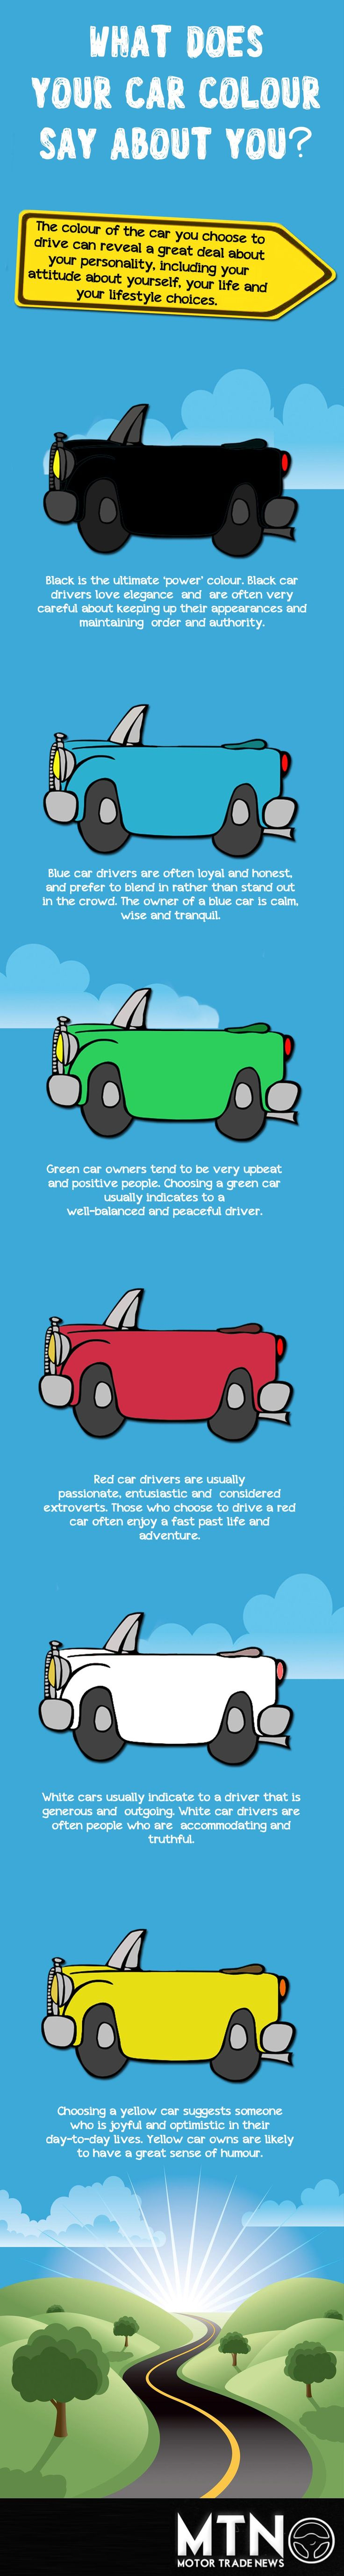 What does your car colour say about you? http://www.motortradenews.org/what-does-your-car-colour-say-about-you/ #cars